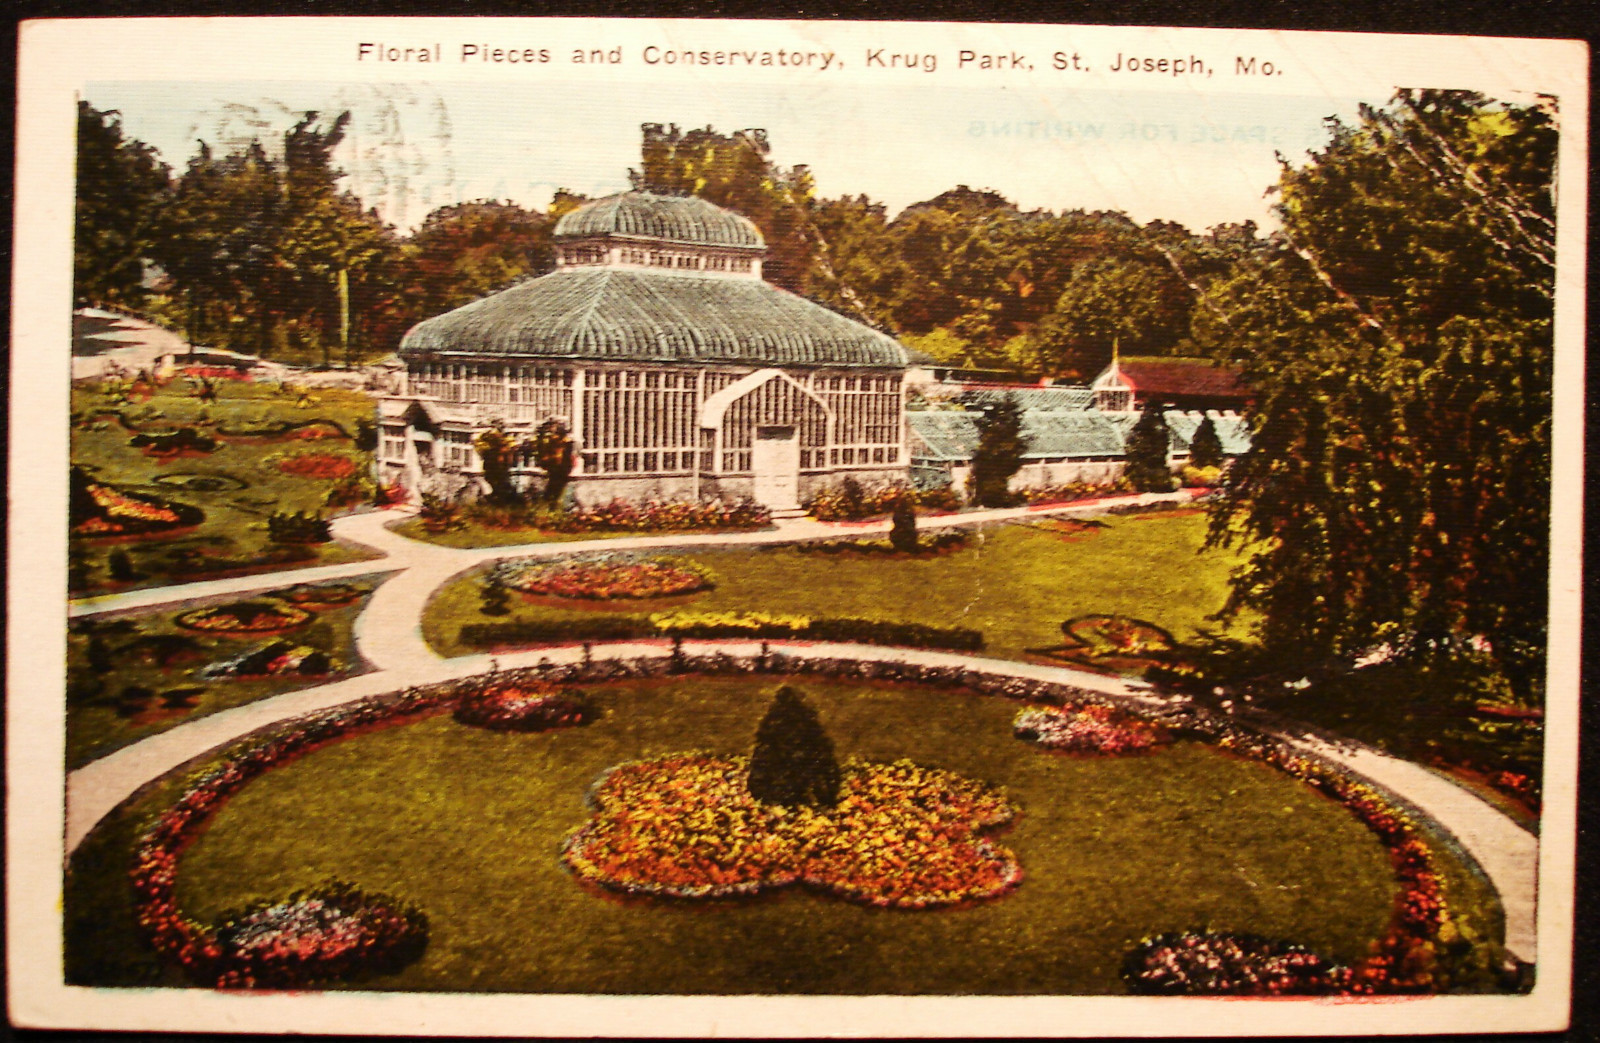 Krug Park Floral Pieces and Conservatory – St. Joseph Mo